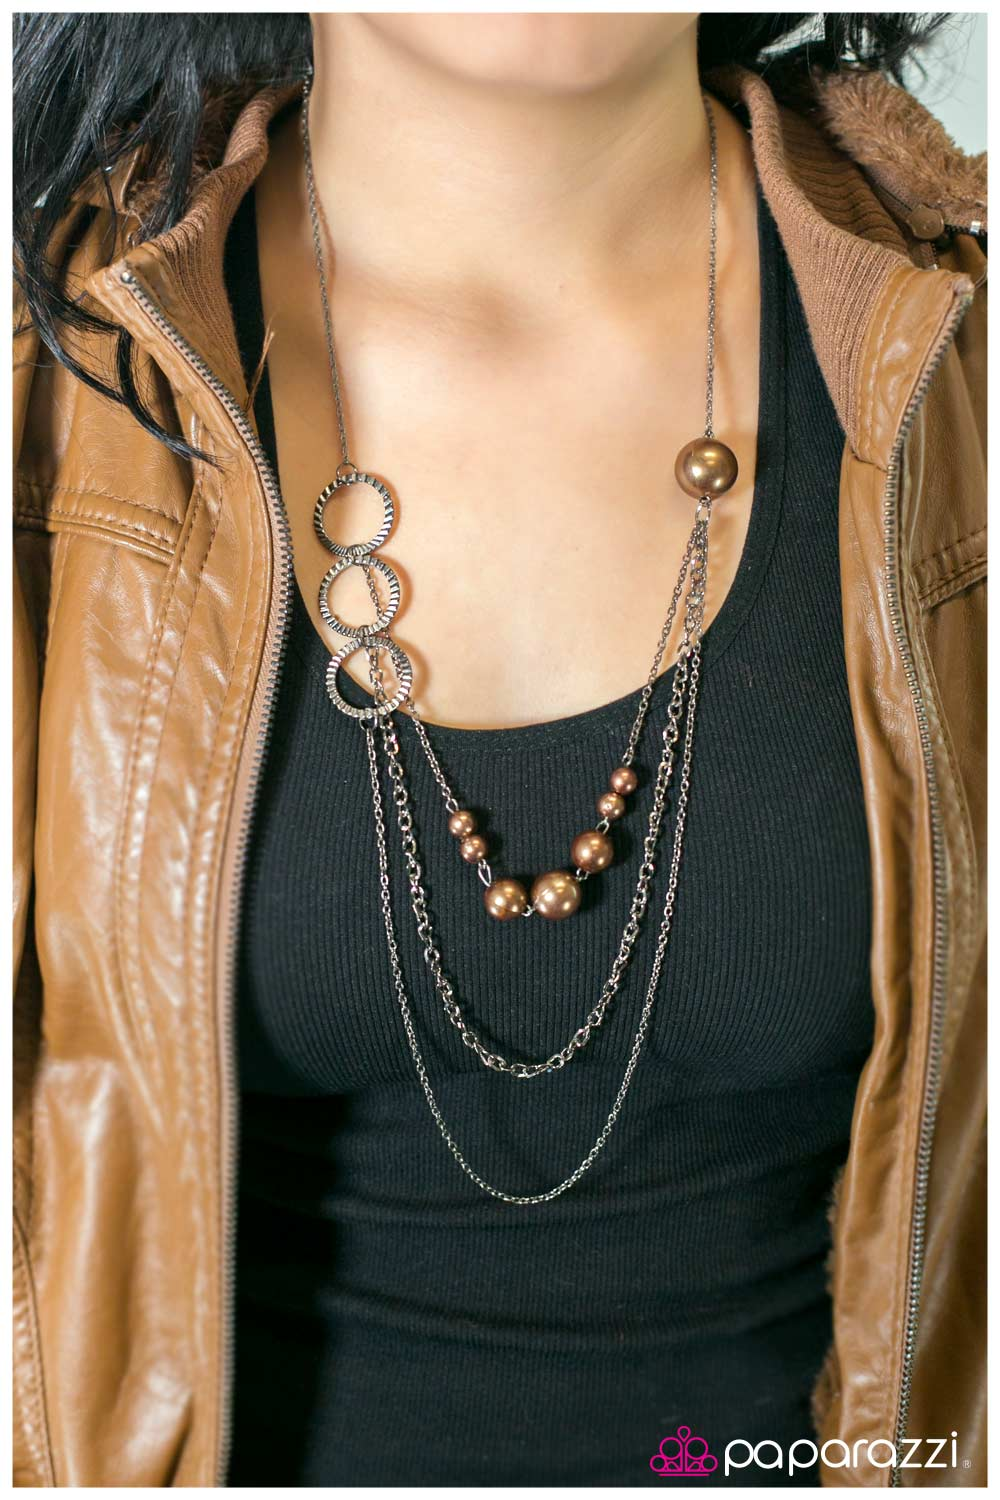 Your Crimping My Style - Paparazzi necklace